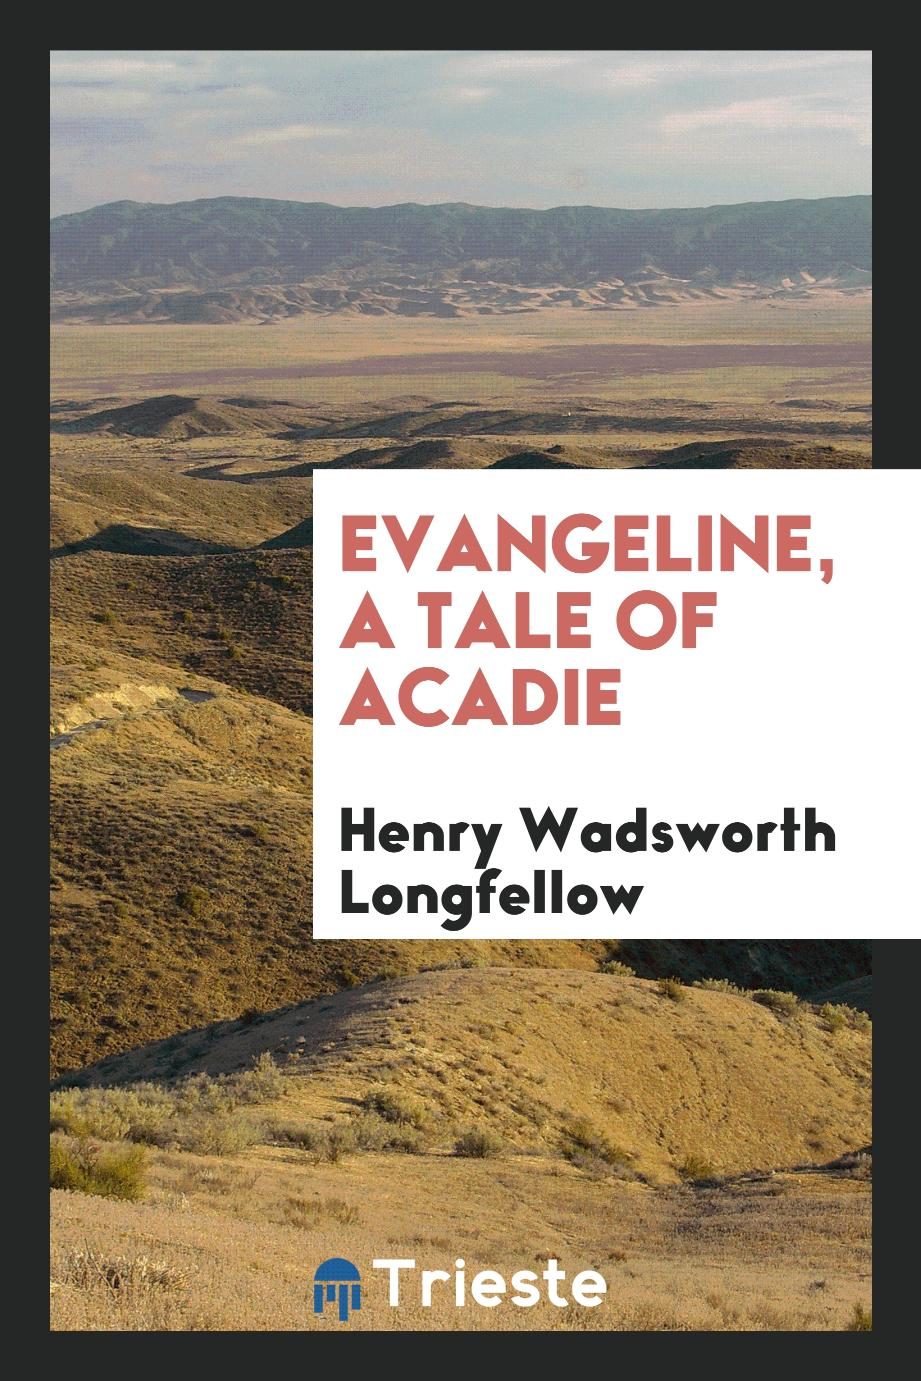 Henry Wadsworth Longfellow - Evangeline, a Tale of Acadie